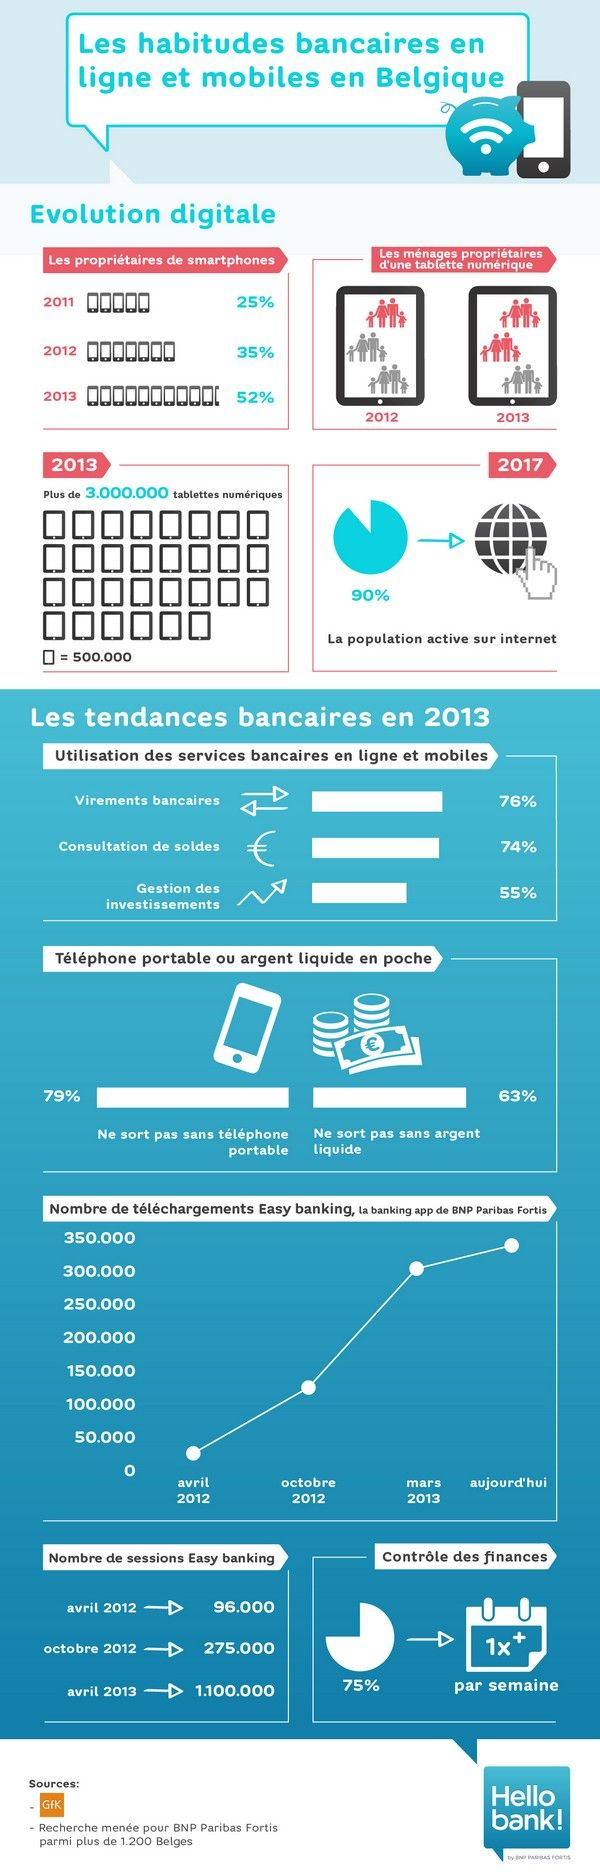 Hello Bank - Infographic about the use of mobile web and mobile/web banking in Belgium